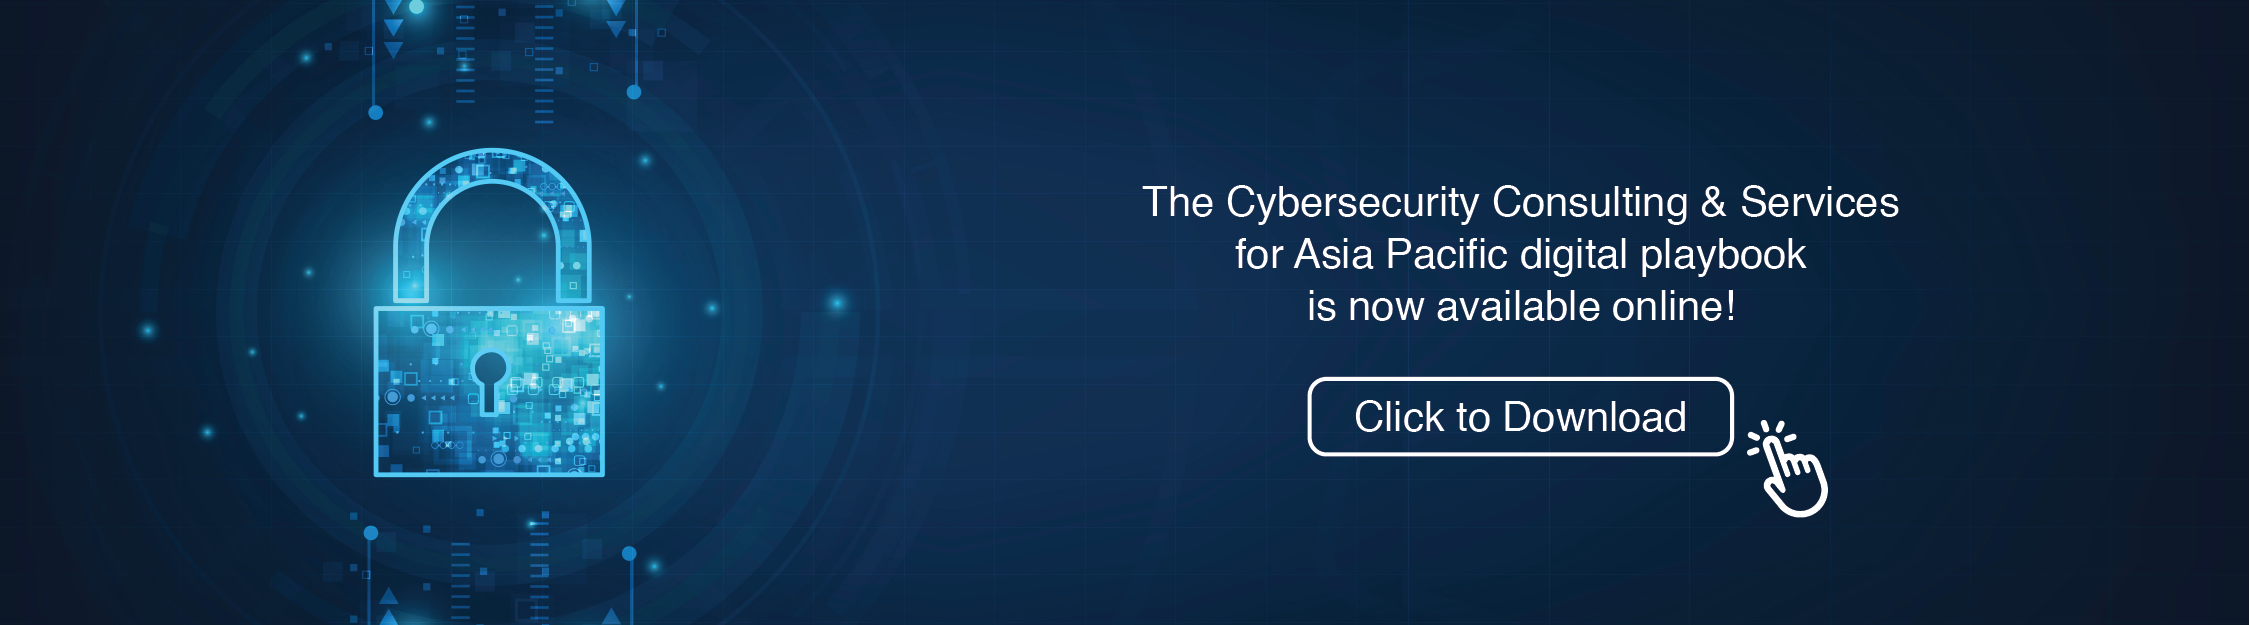 Download Cybersecurity Consulting & Services for APAC Playbook now!